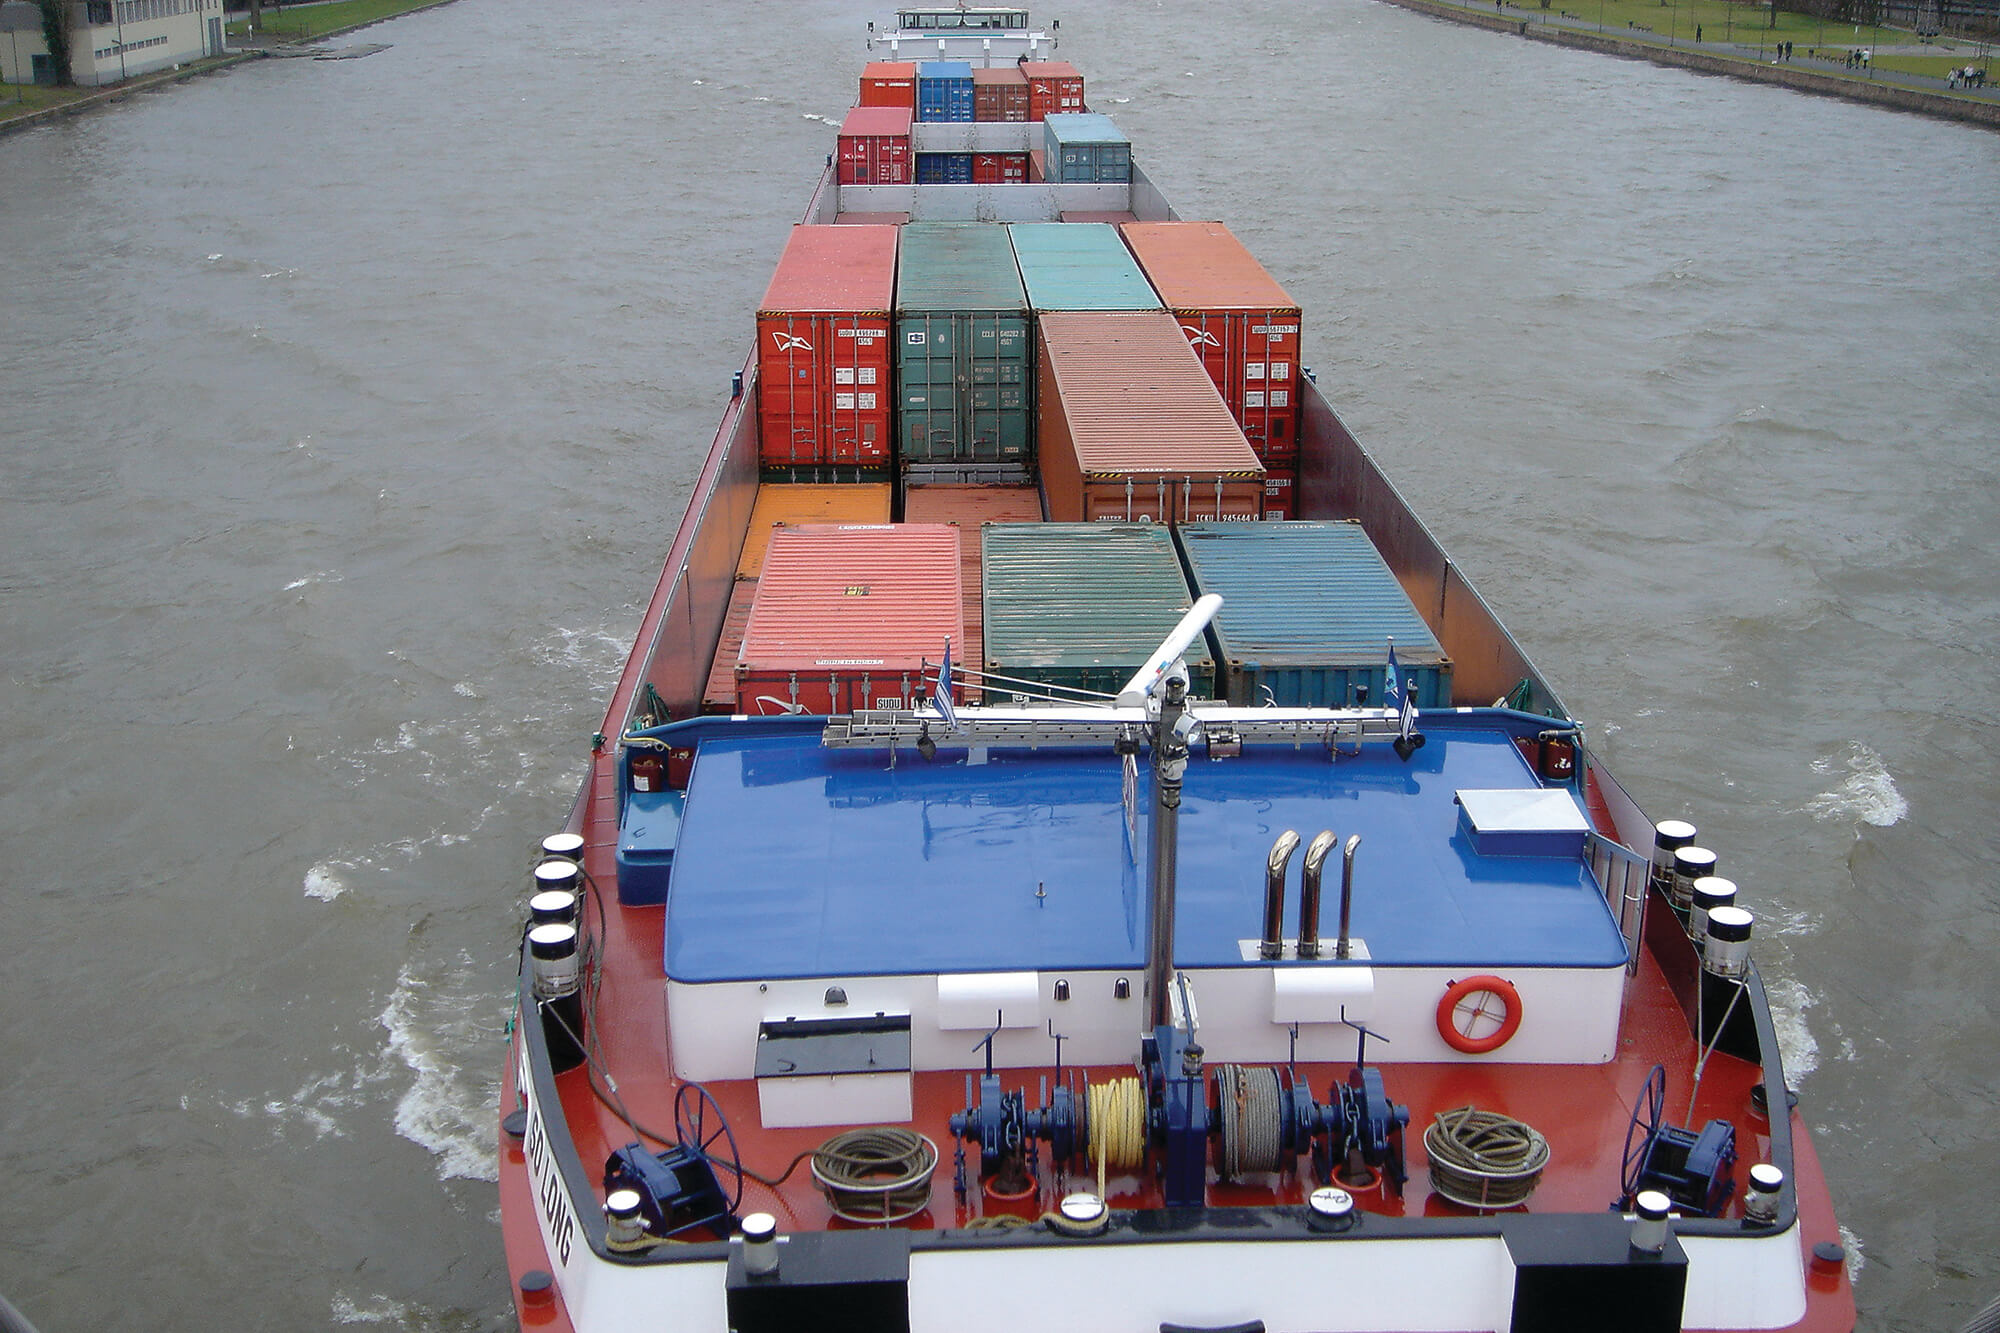 A container ship on a waterway